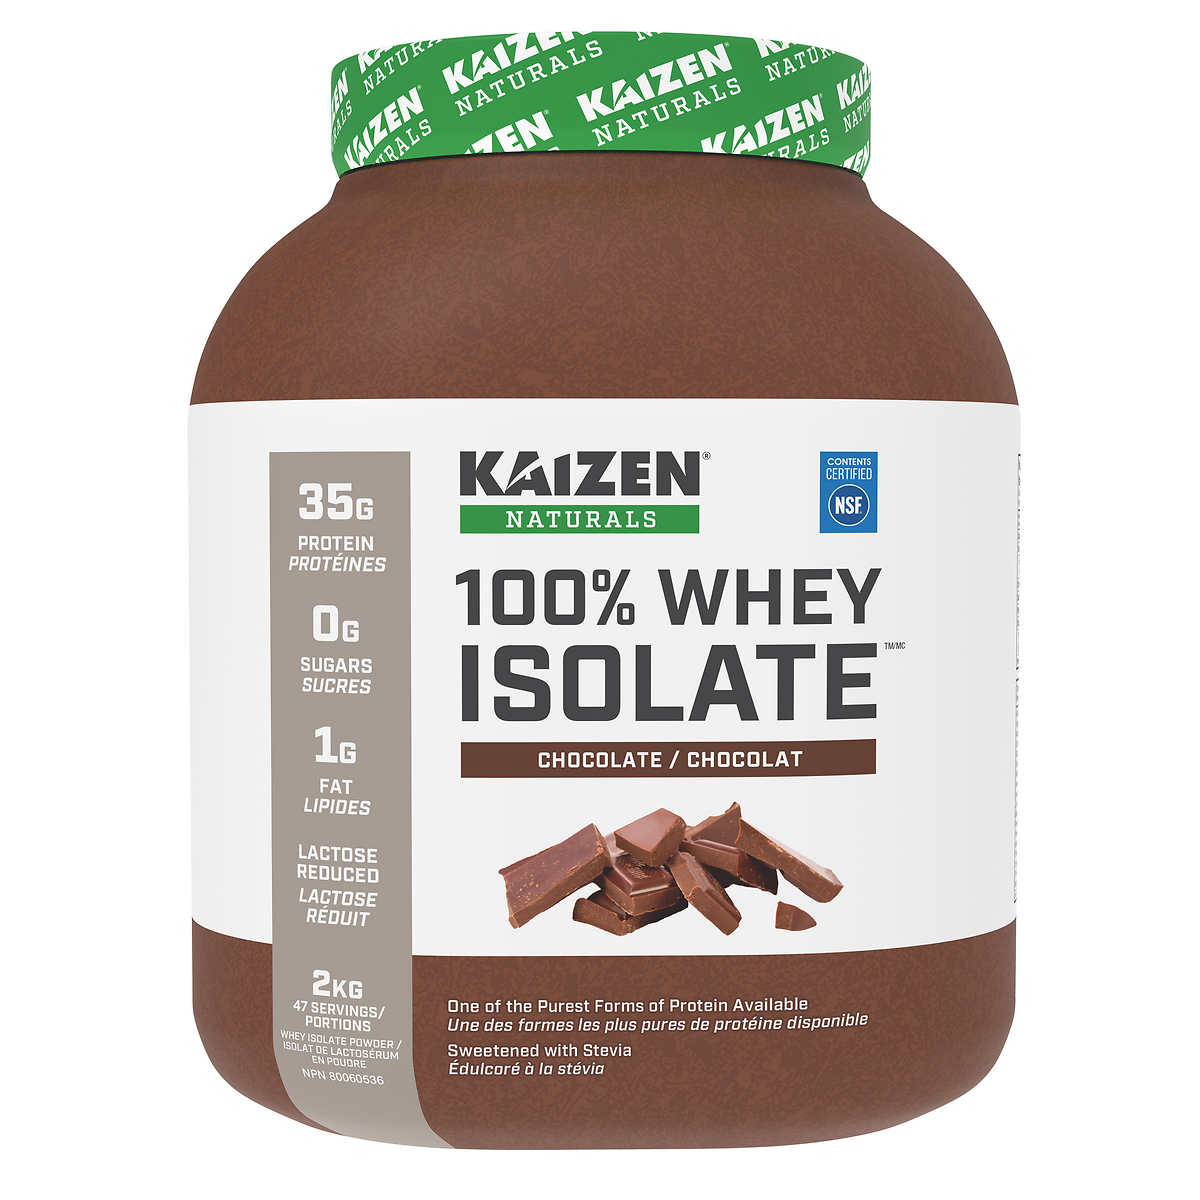 Kaizen Naturals Whey Isolate Protein Review